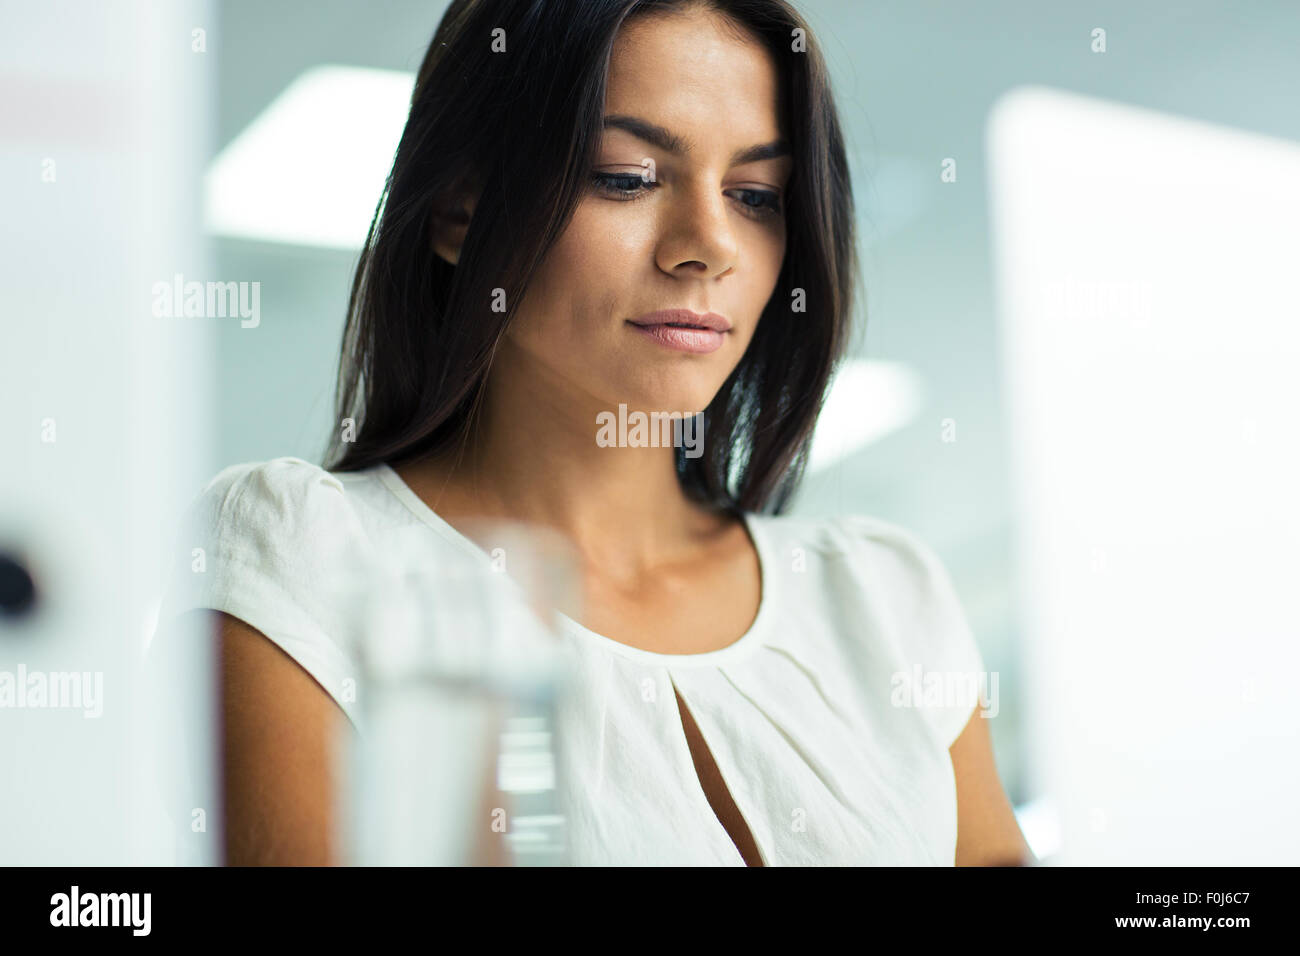 Portrait of a beautiful businesswoman working in office Photo Stock